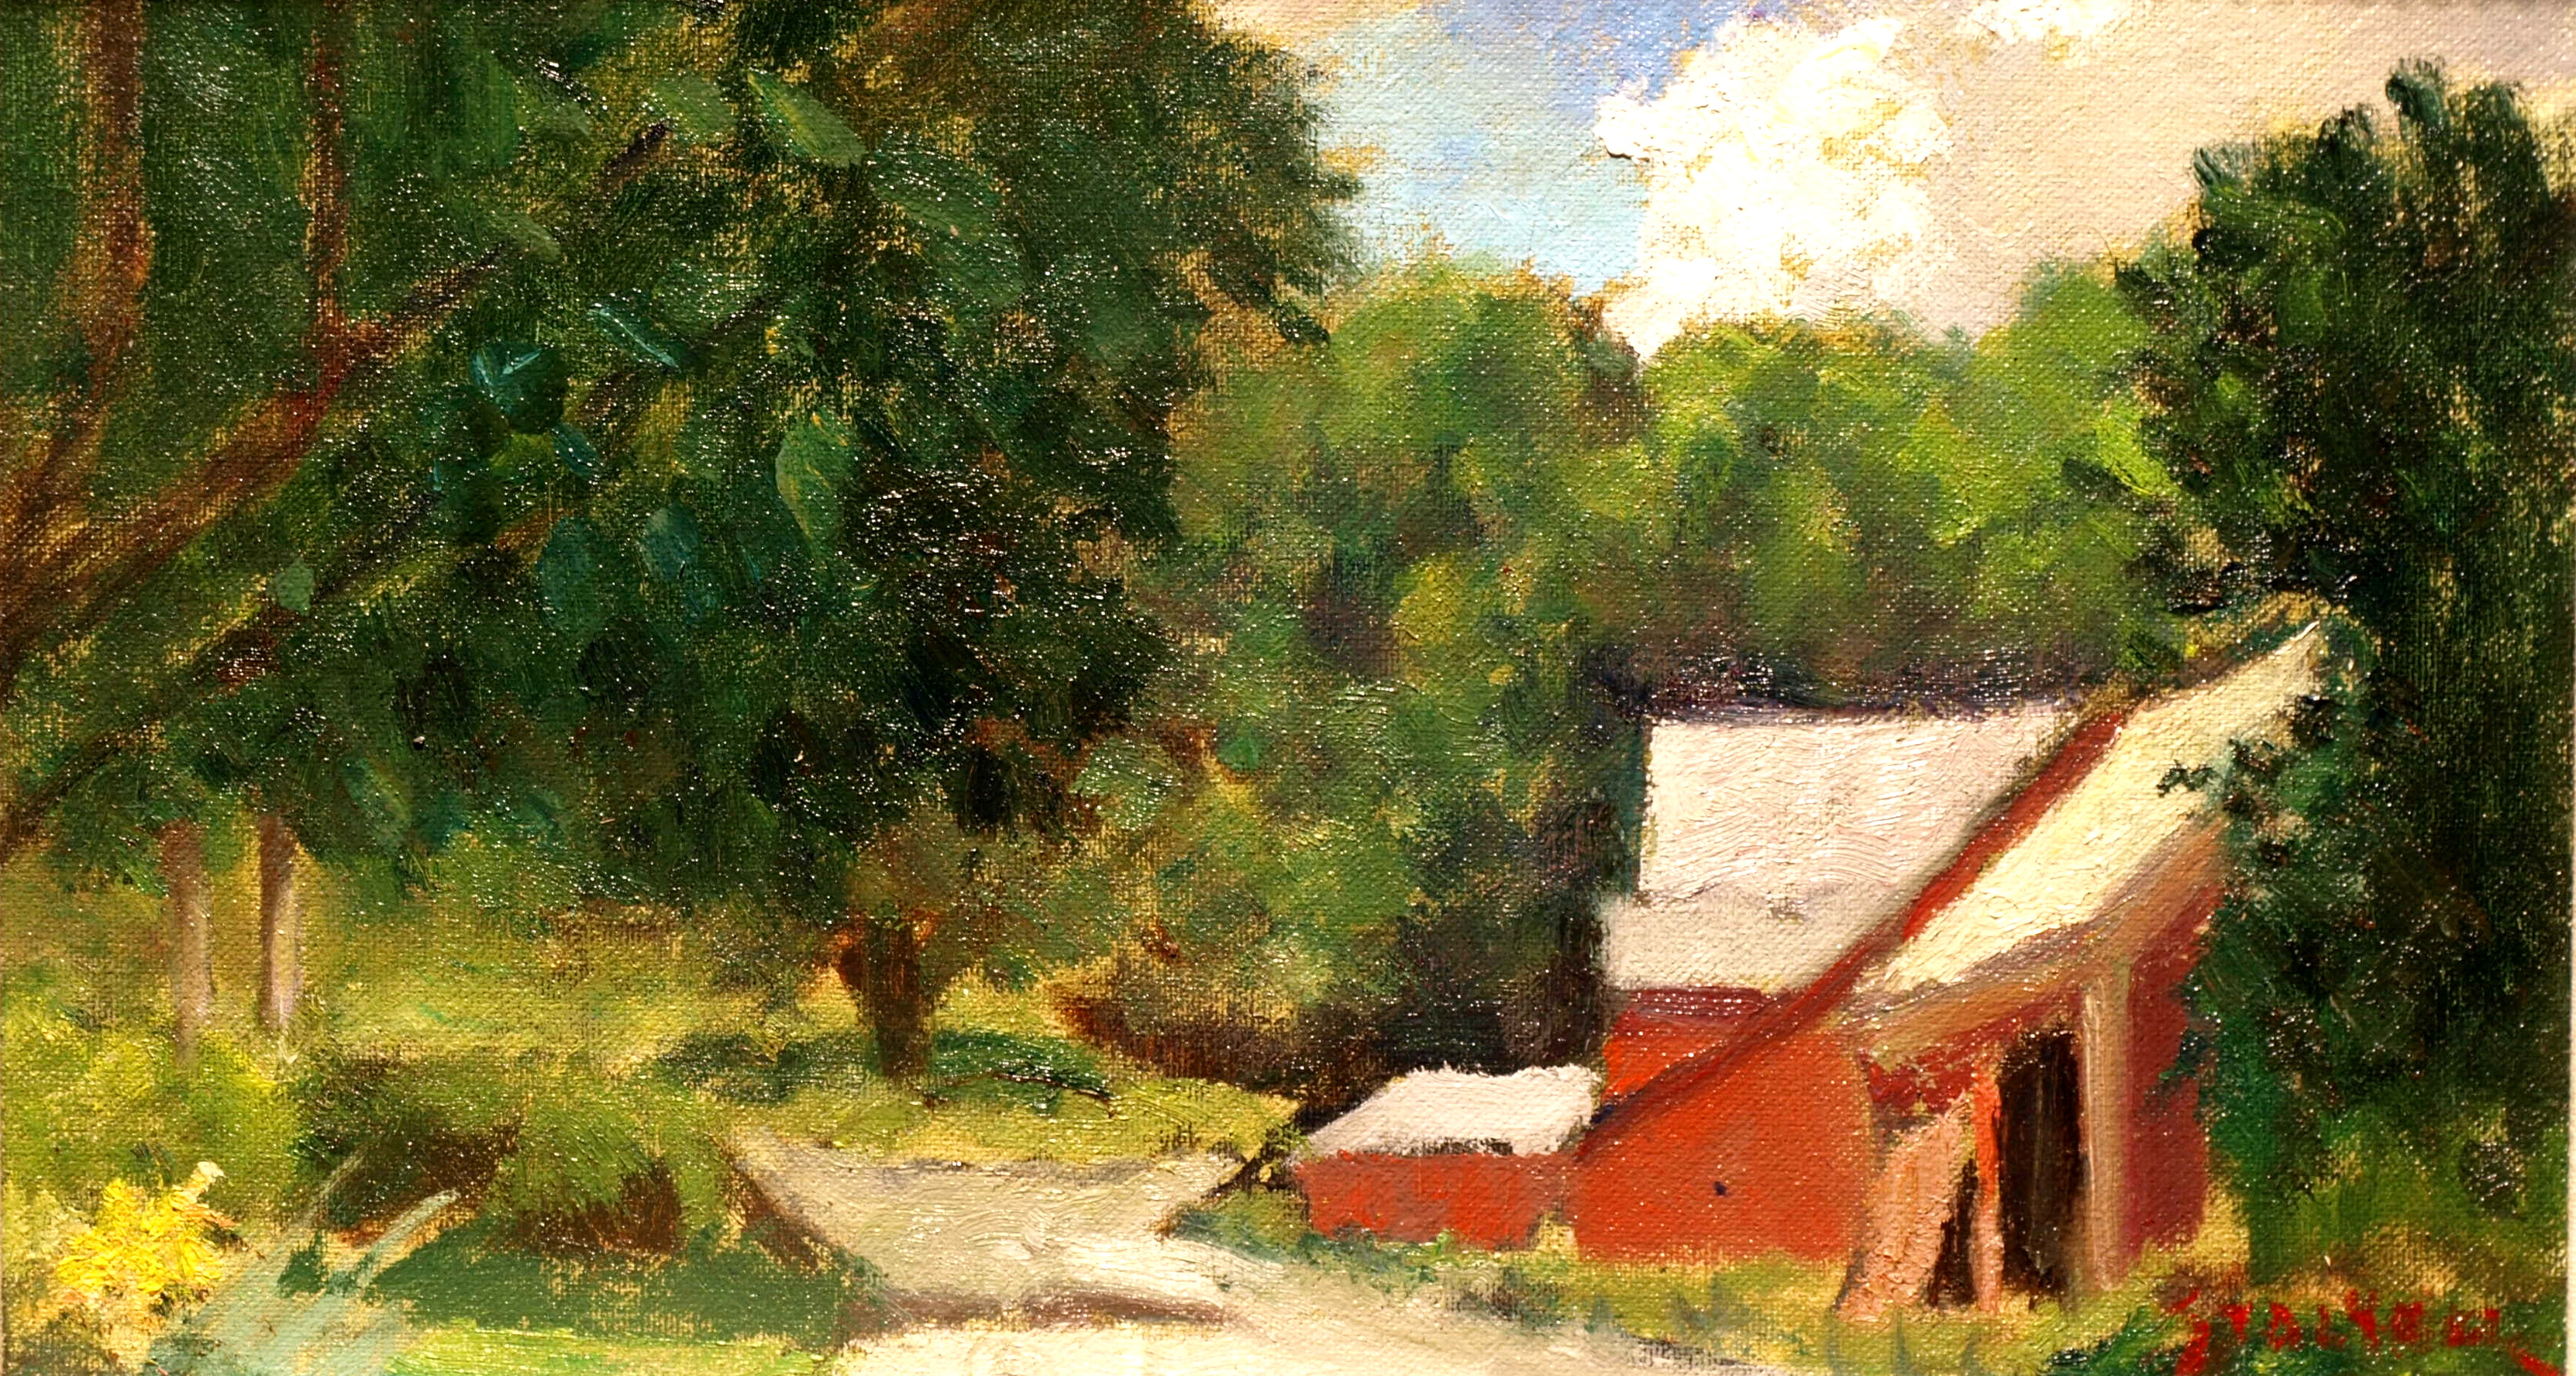 Along Newton Road, Oil on Canvas on Panel, 8 x 14 Inches, by Richard Stalter, $220